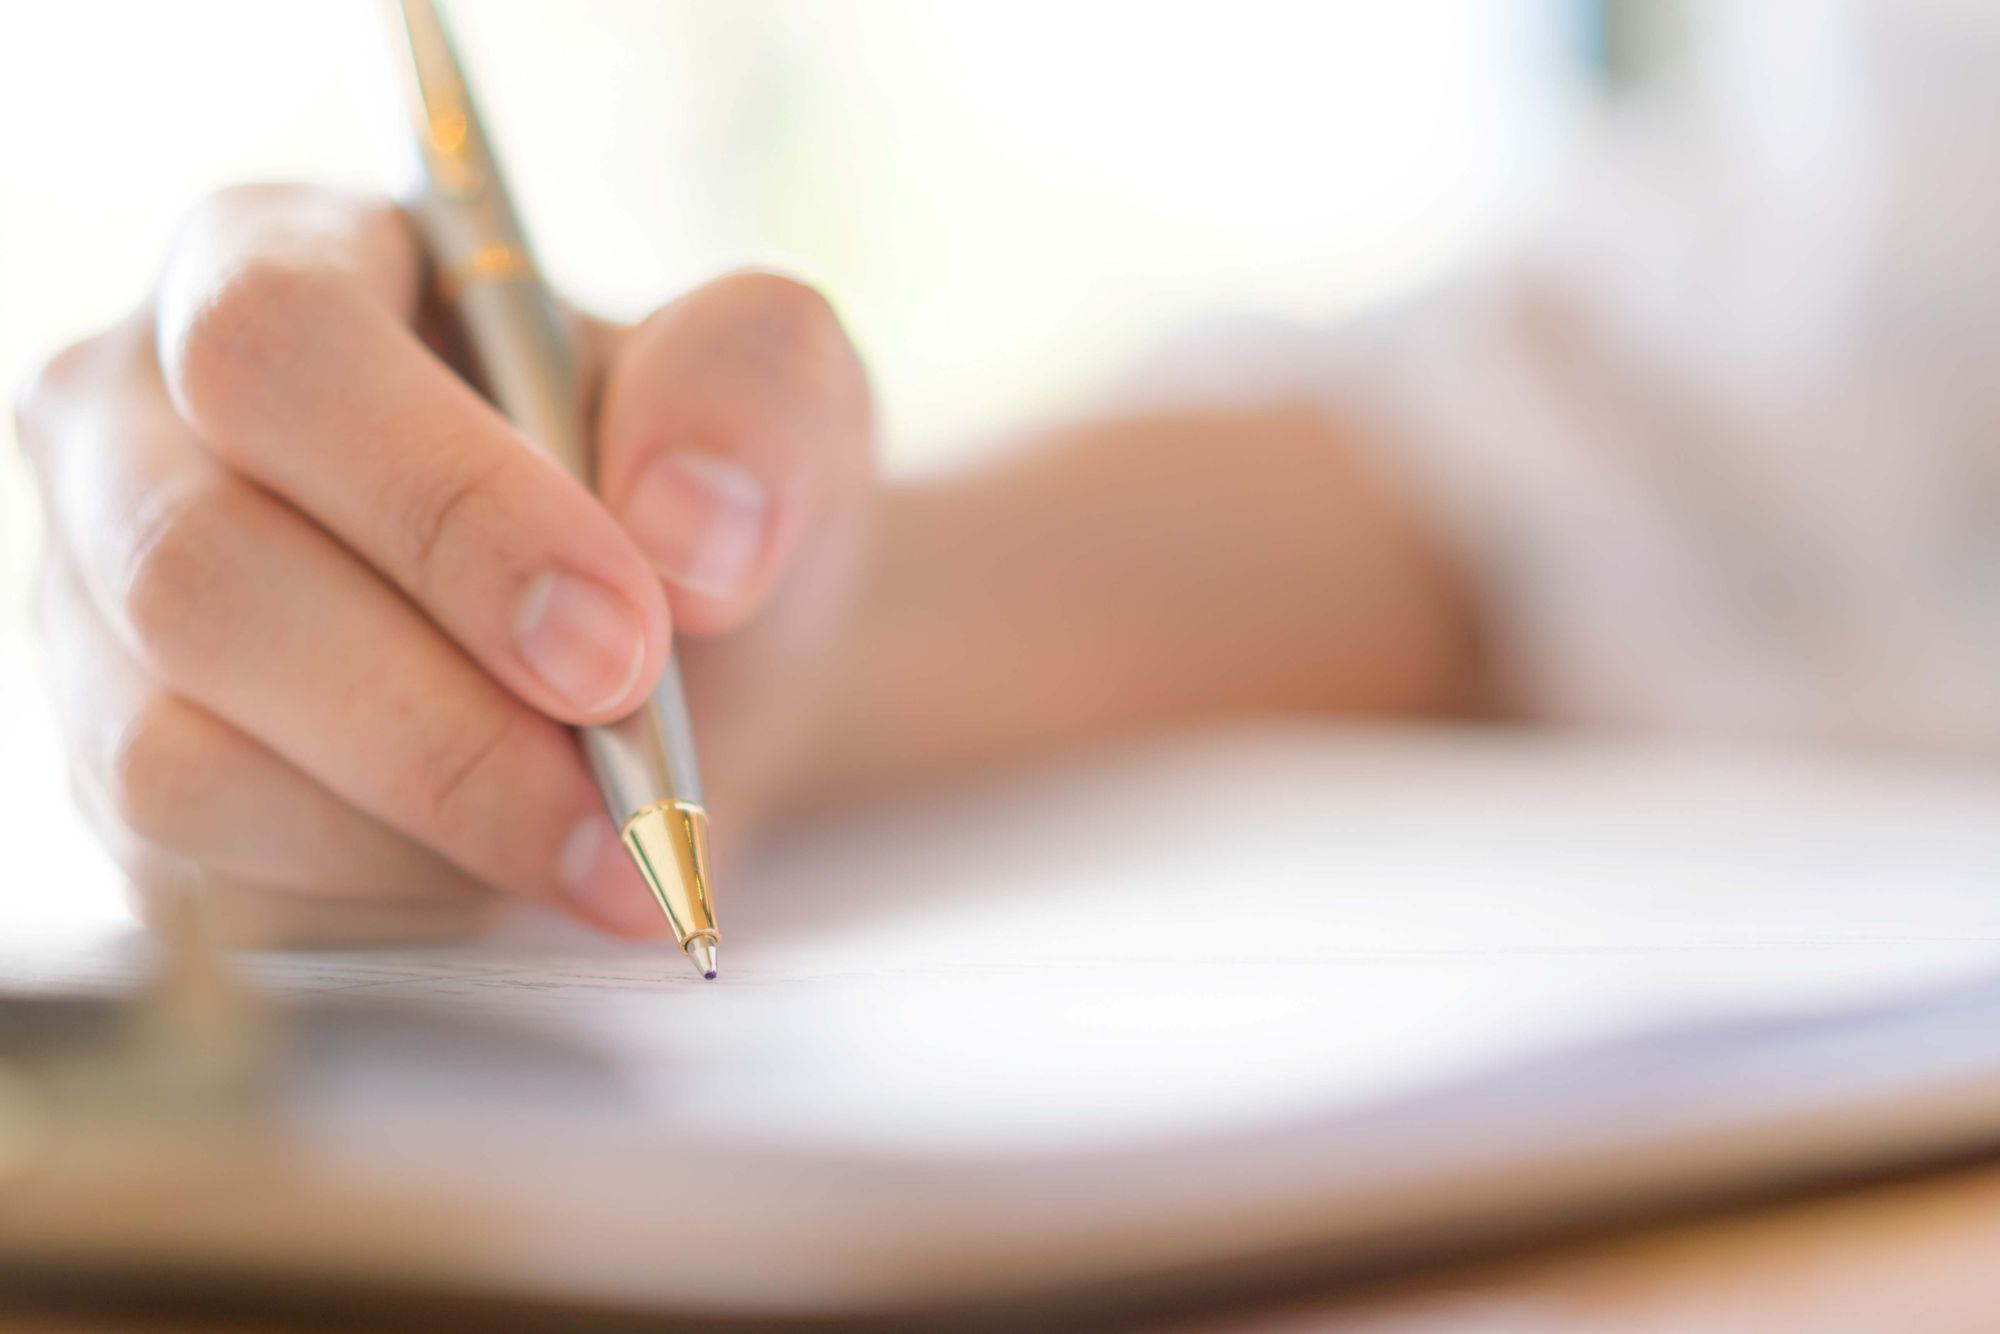 Preparation for a dynamic examination timetable in the current situation